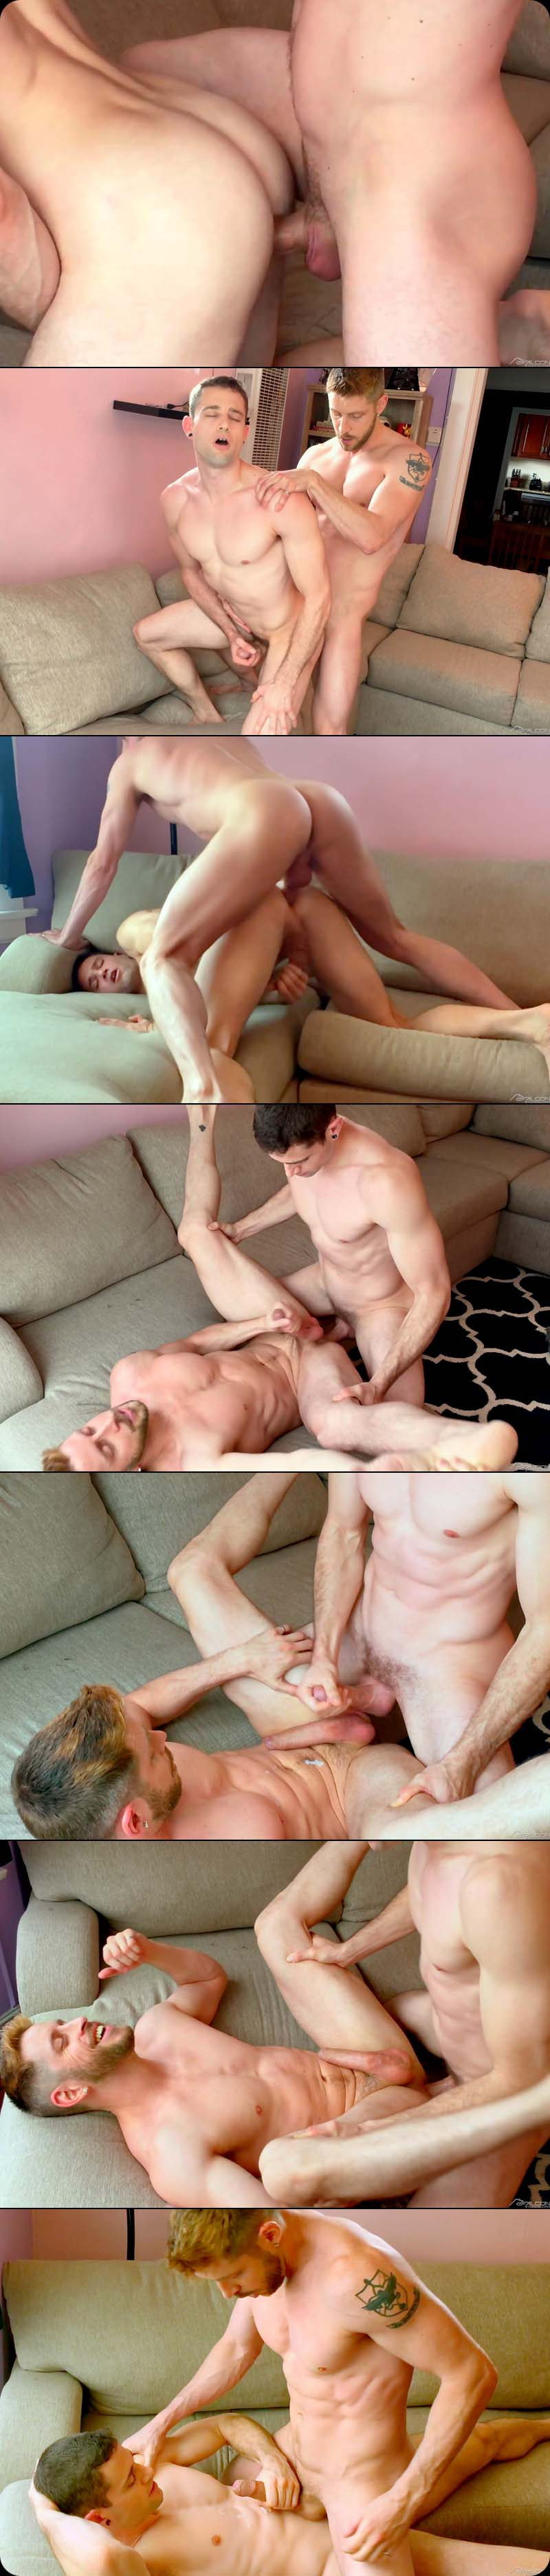 My Hot Roommate (Johnny Ford and Quin Quire Flip-Fuck) at FalconStudios